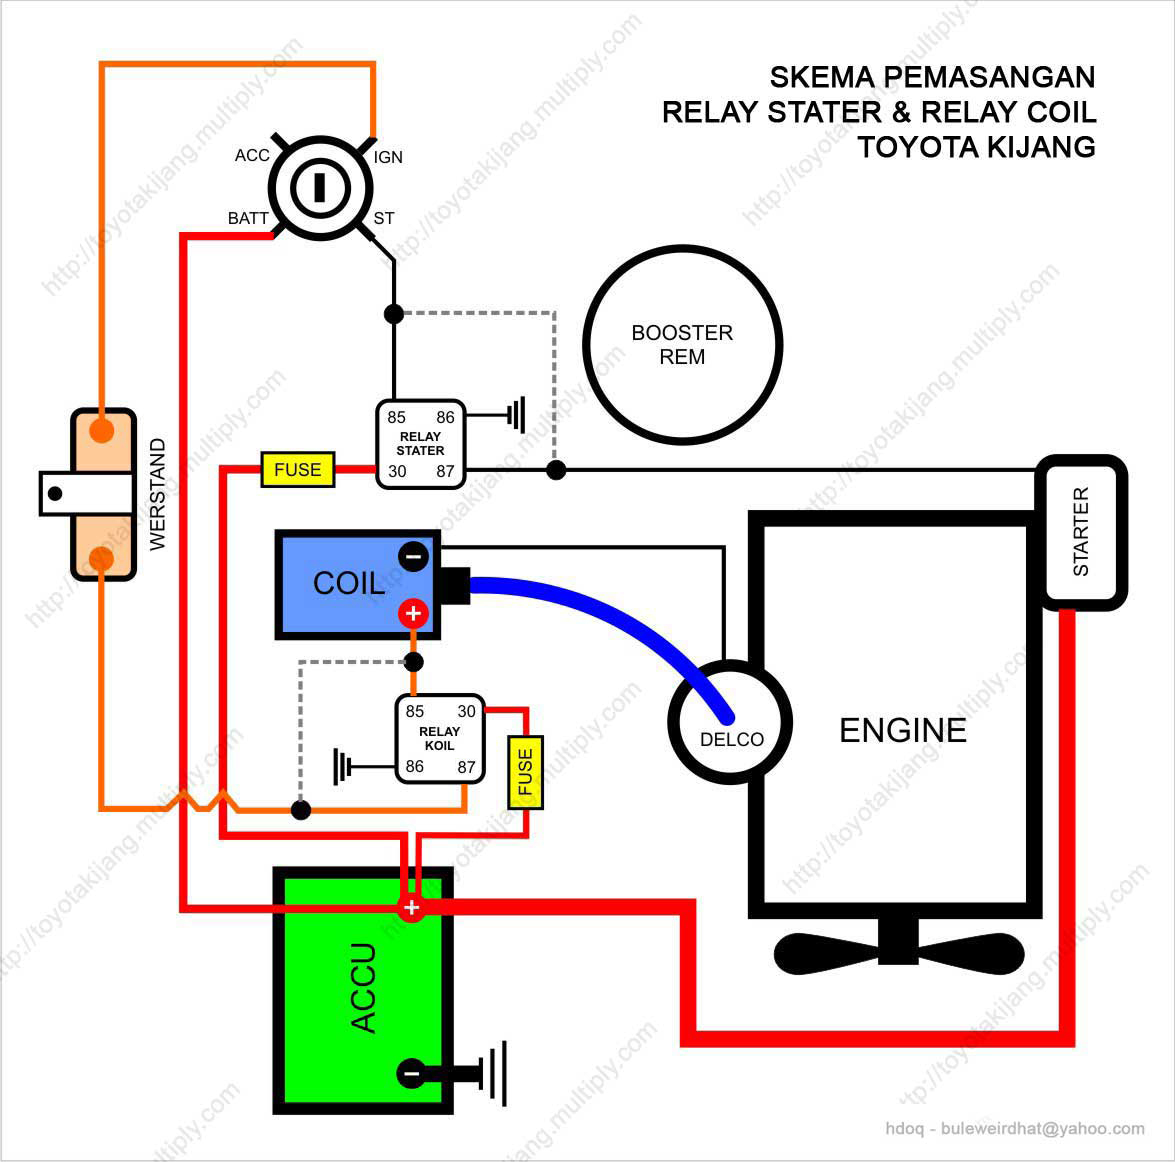 Toyota Kijang Cyber Community  Skema Relay Koil  U0026 Relay Stater